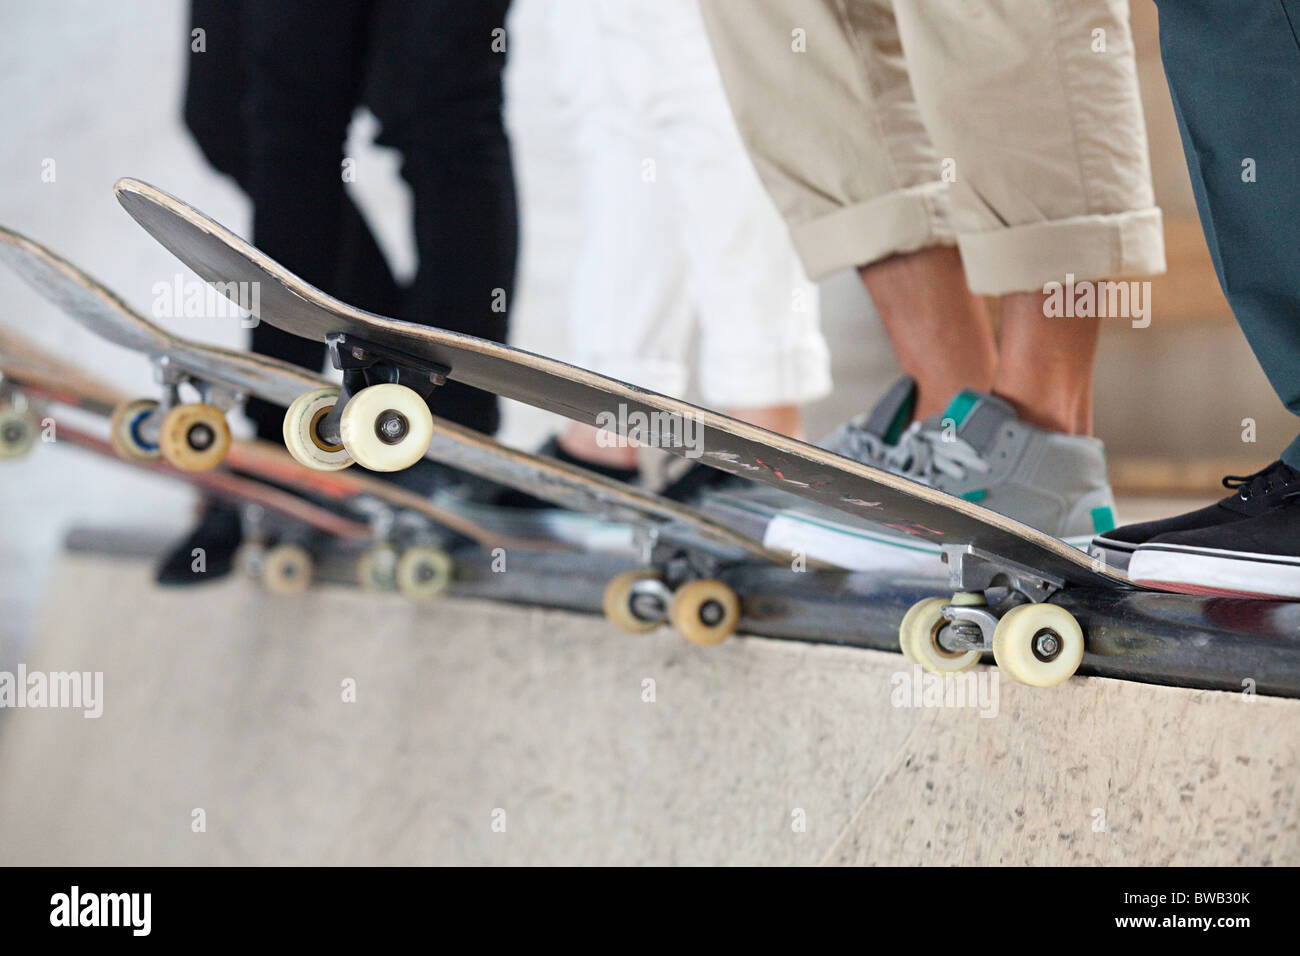 Skaters and their boards - Stock Image